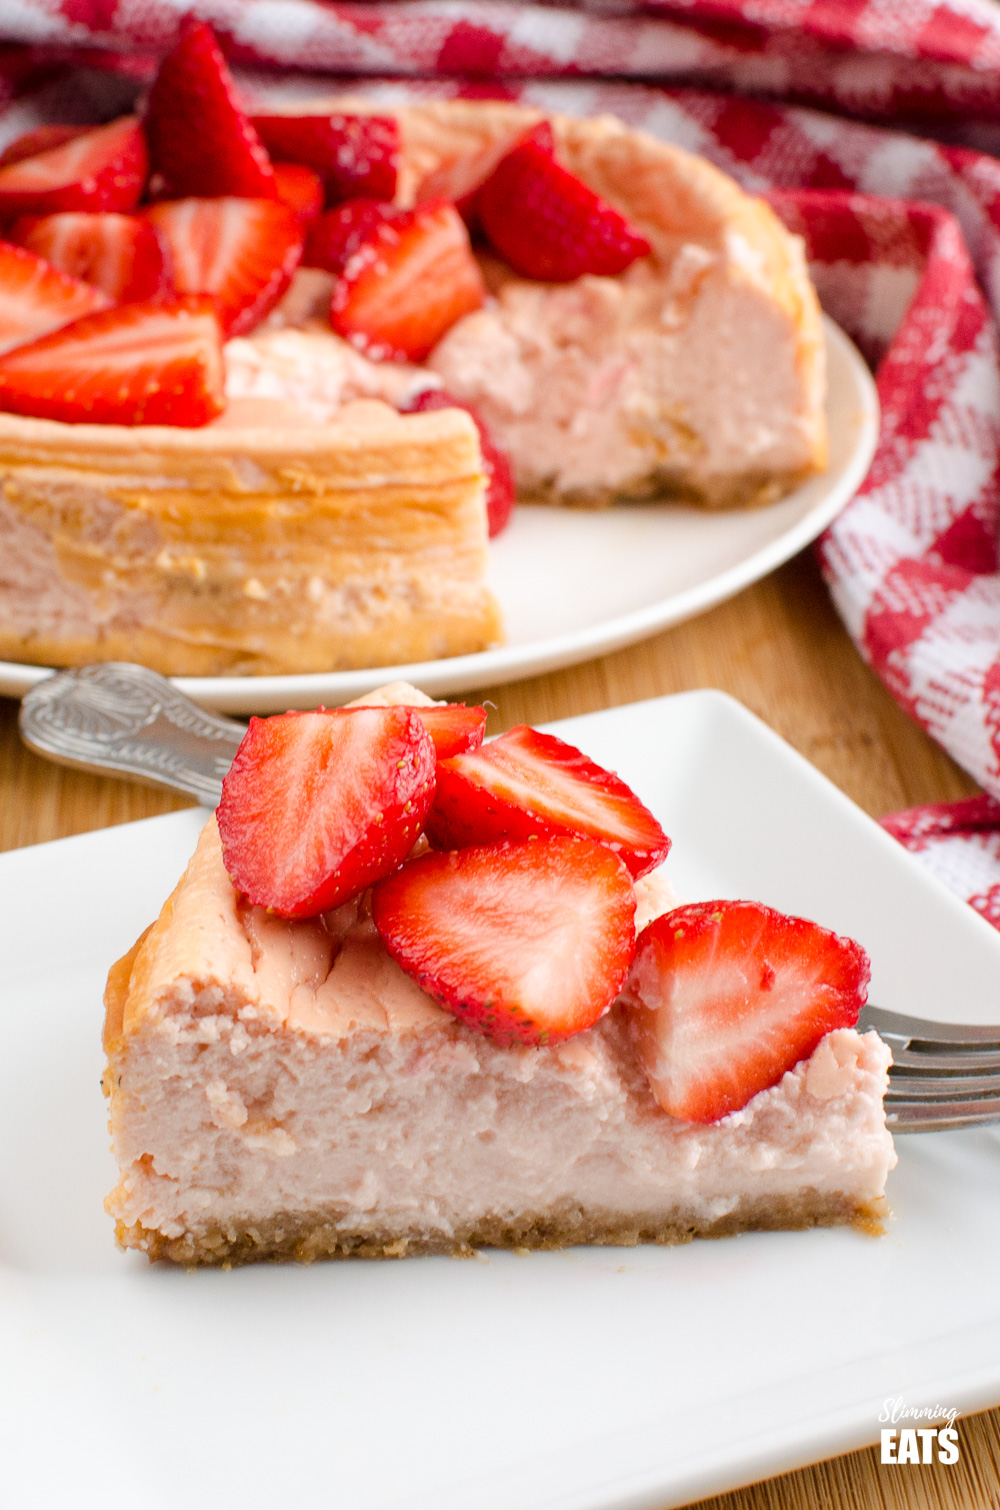 slice of baked strawberry cheesecake on white plate